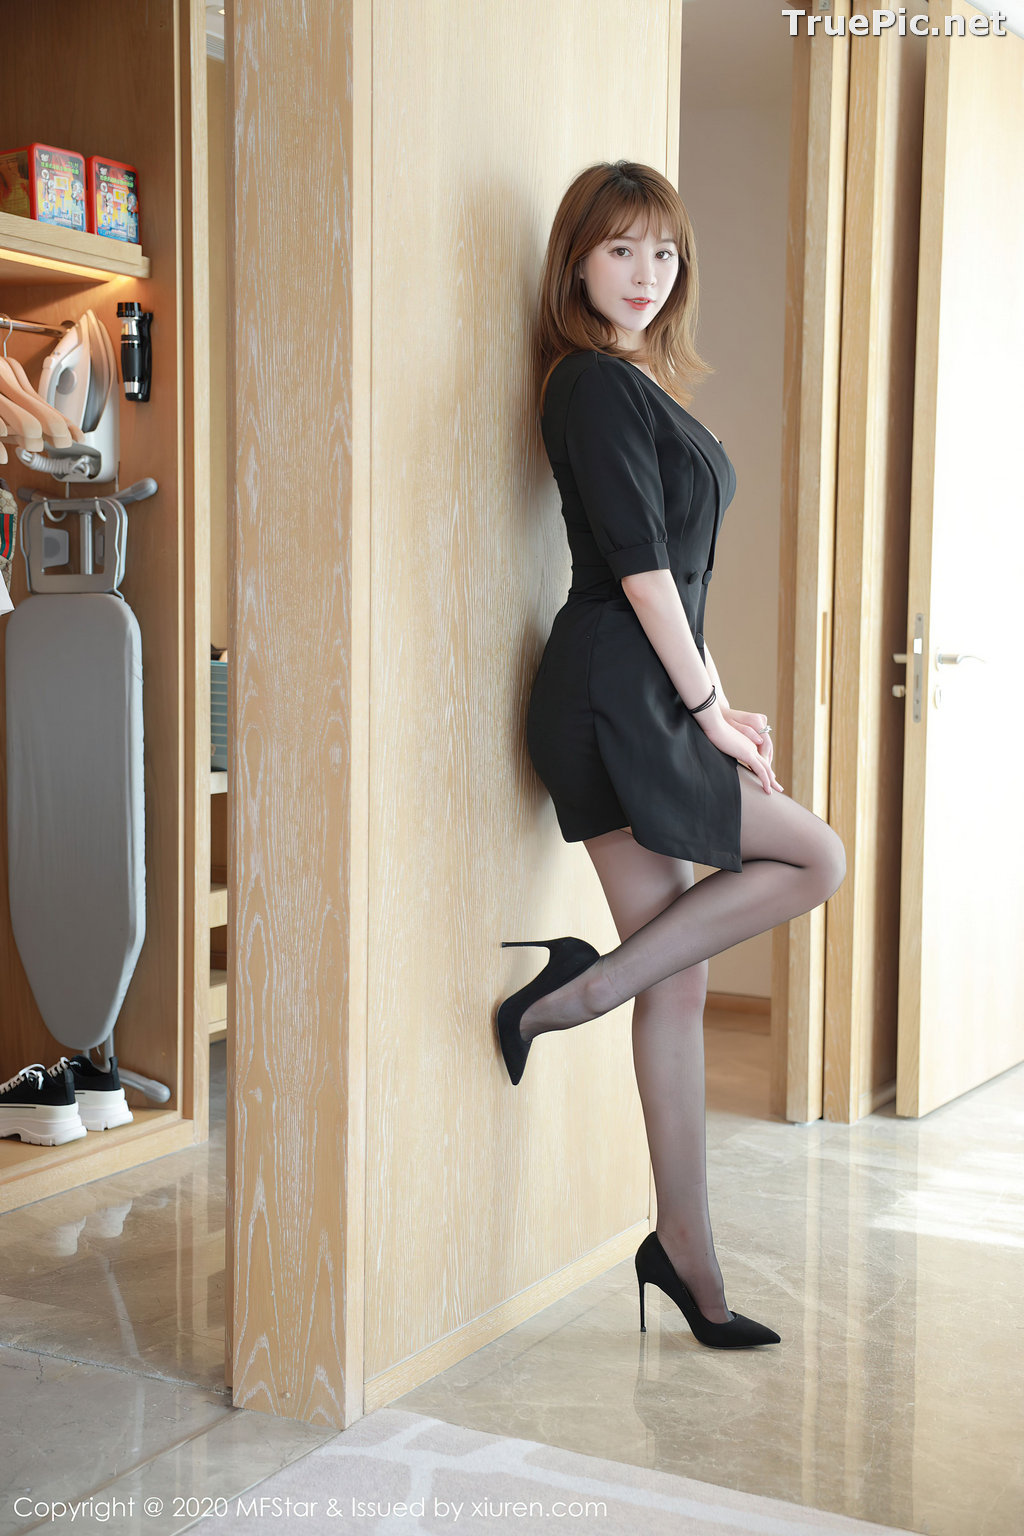 Image MFStar Vol.405 - Chinese Model - Yoo优优 - Hot Woman in Black - TruePic.net - Picture-7